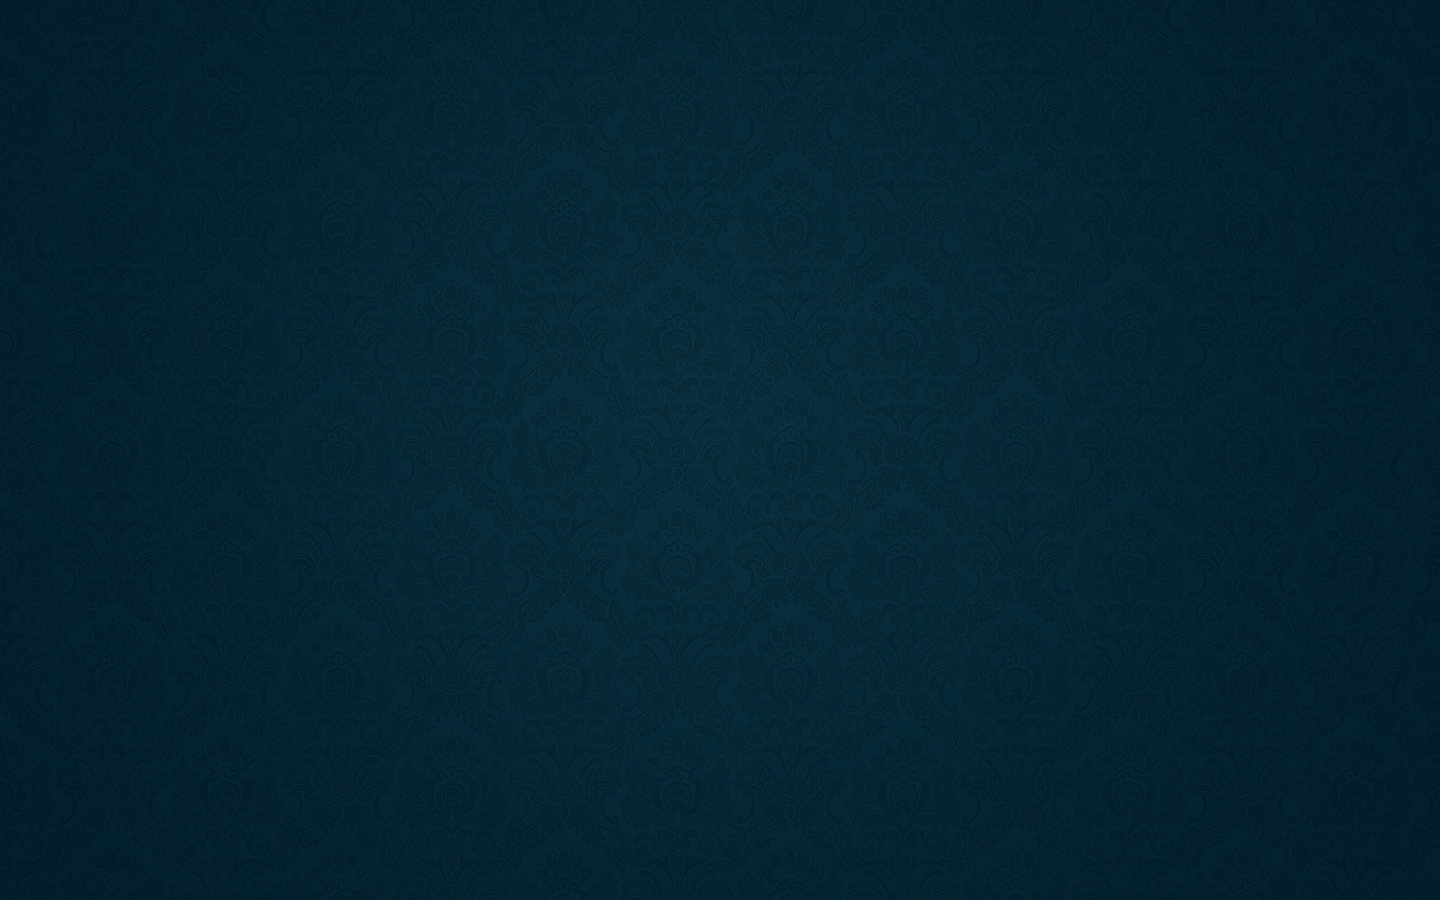 Download Minimalistic Wallpaper 1440x900 Wallpoper 372462 1440x900